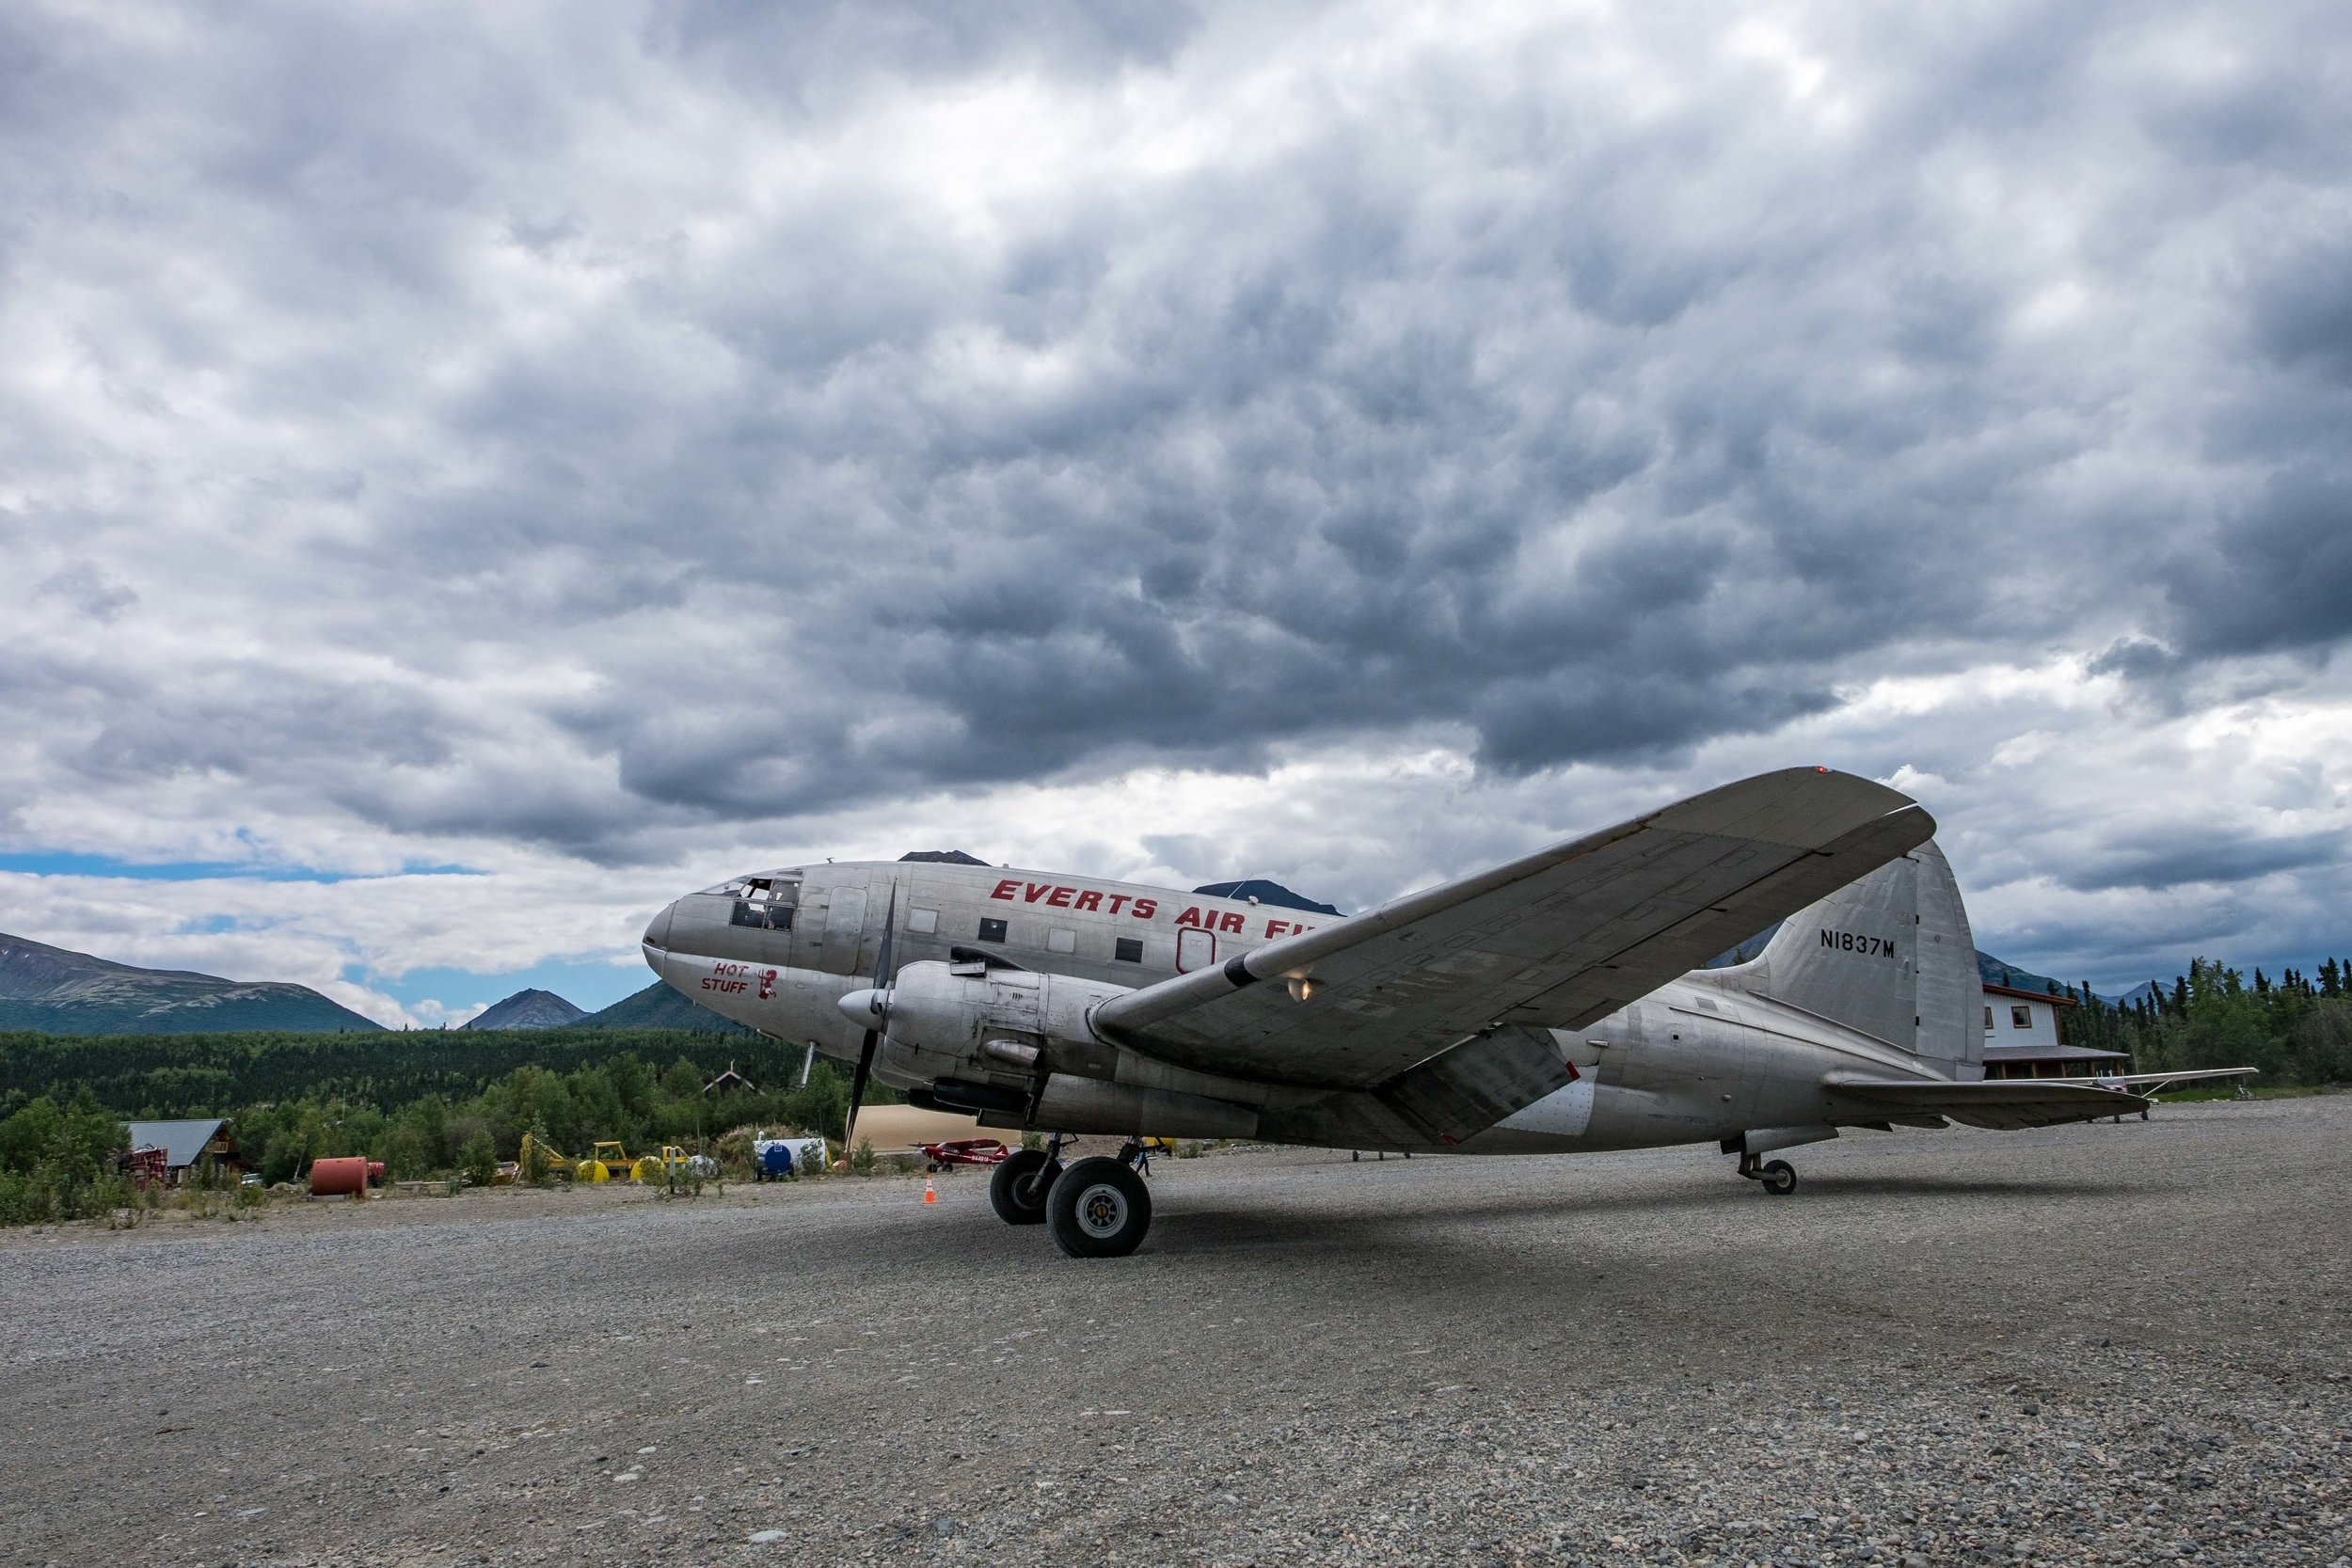 A Curtis C-46 plane lands in Port Alsworth bringing fuel to the area.